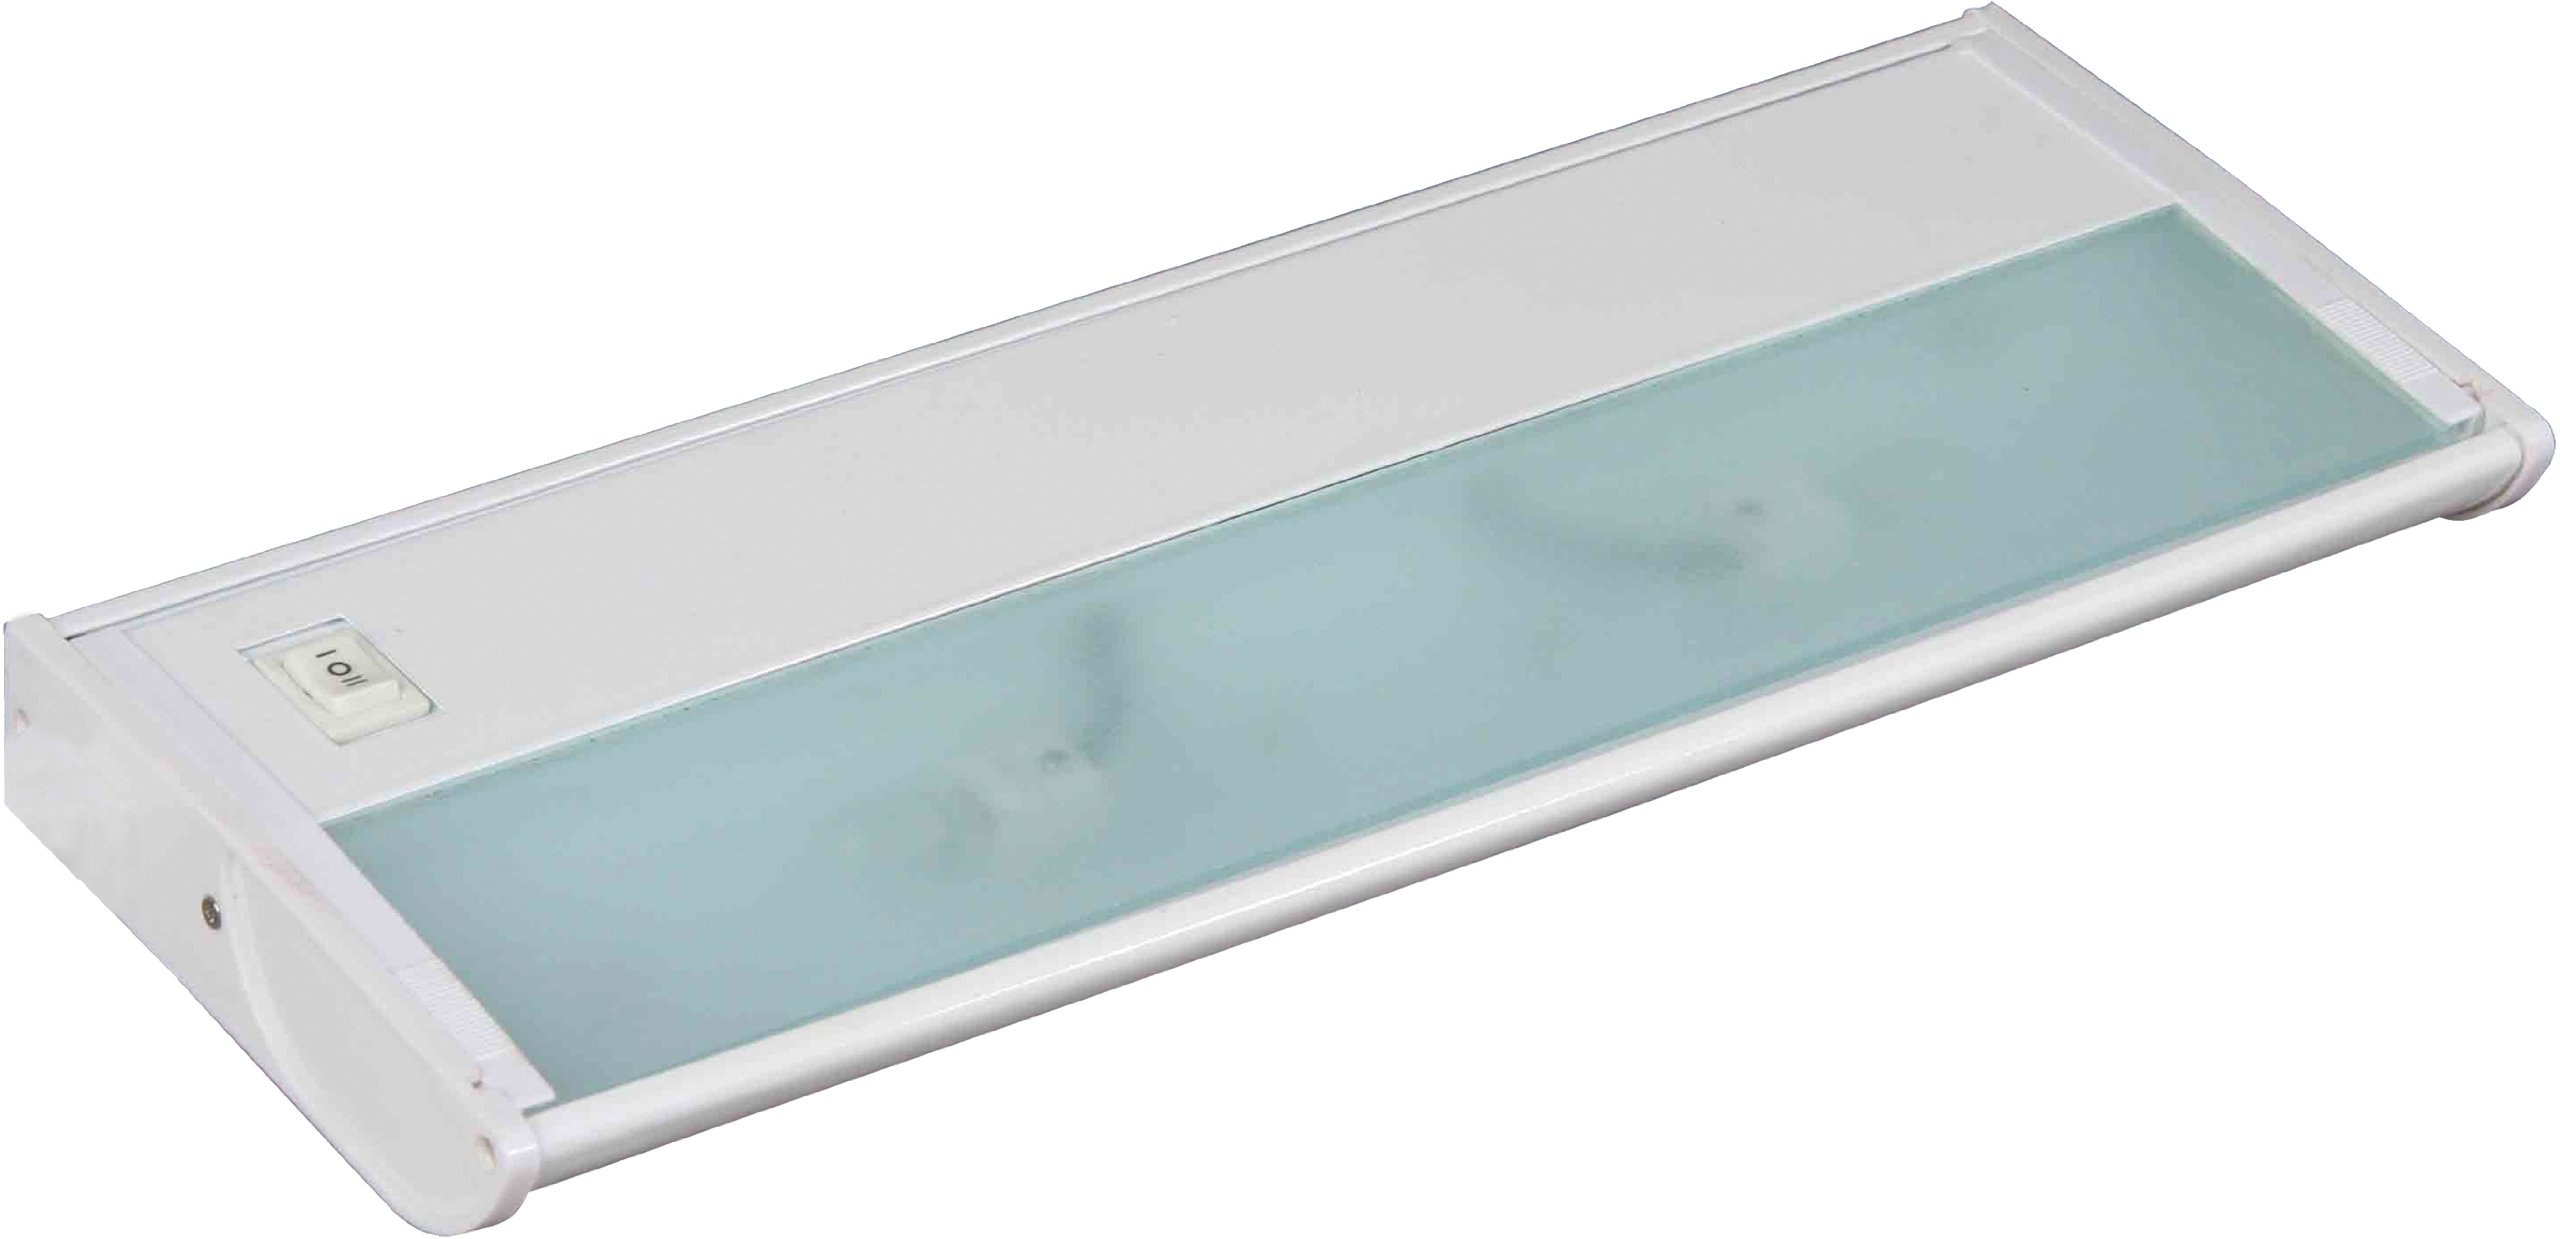 Maxim 87831WT CounterMax MX-X120 13'' 2-Light 120V Xenon, White Finish, Glass, G8 Xenon Xenon Bulb , 50W Max., Dry Safety Rating, 2900K Color Temp, Standard Dimmable, Glass Shade Material, 800 Rated Lumens